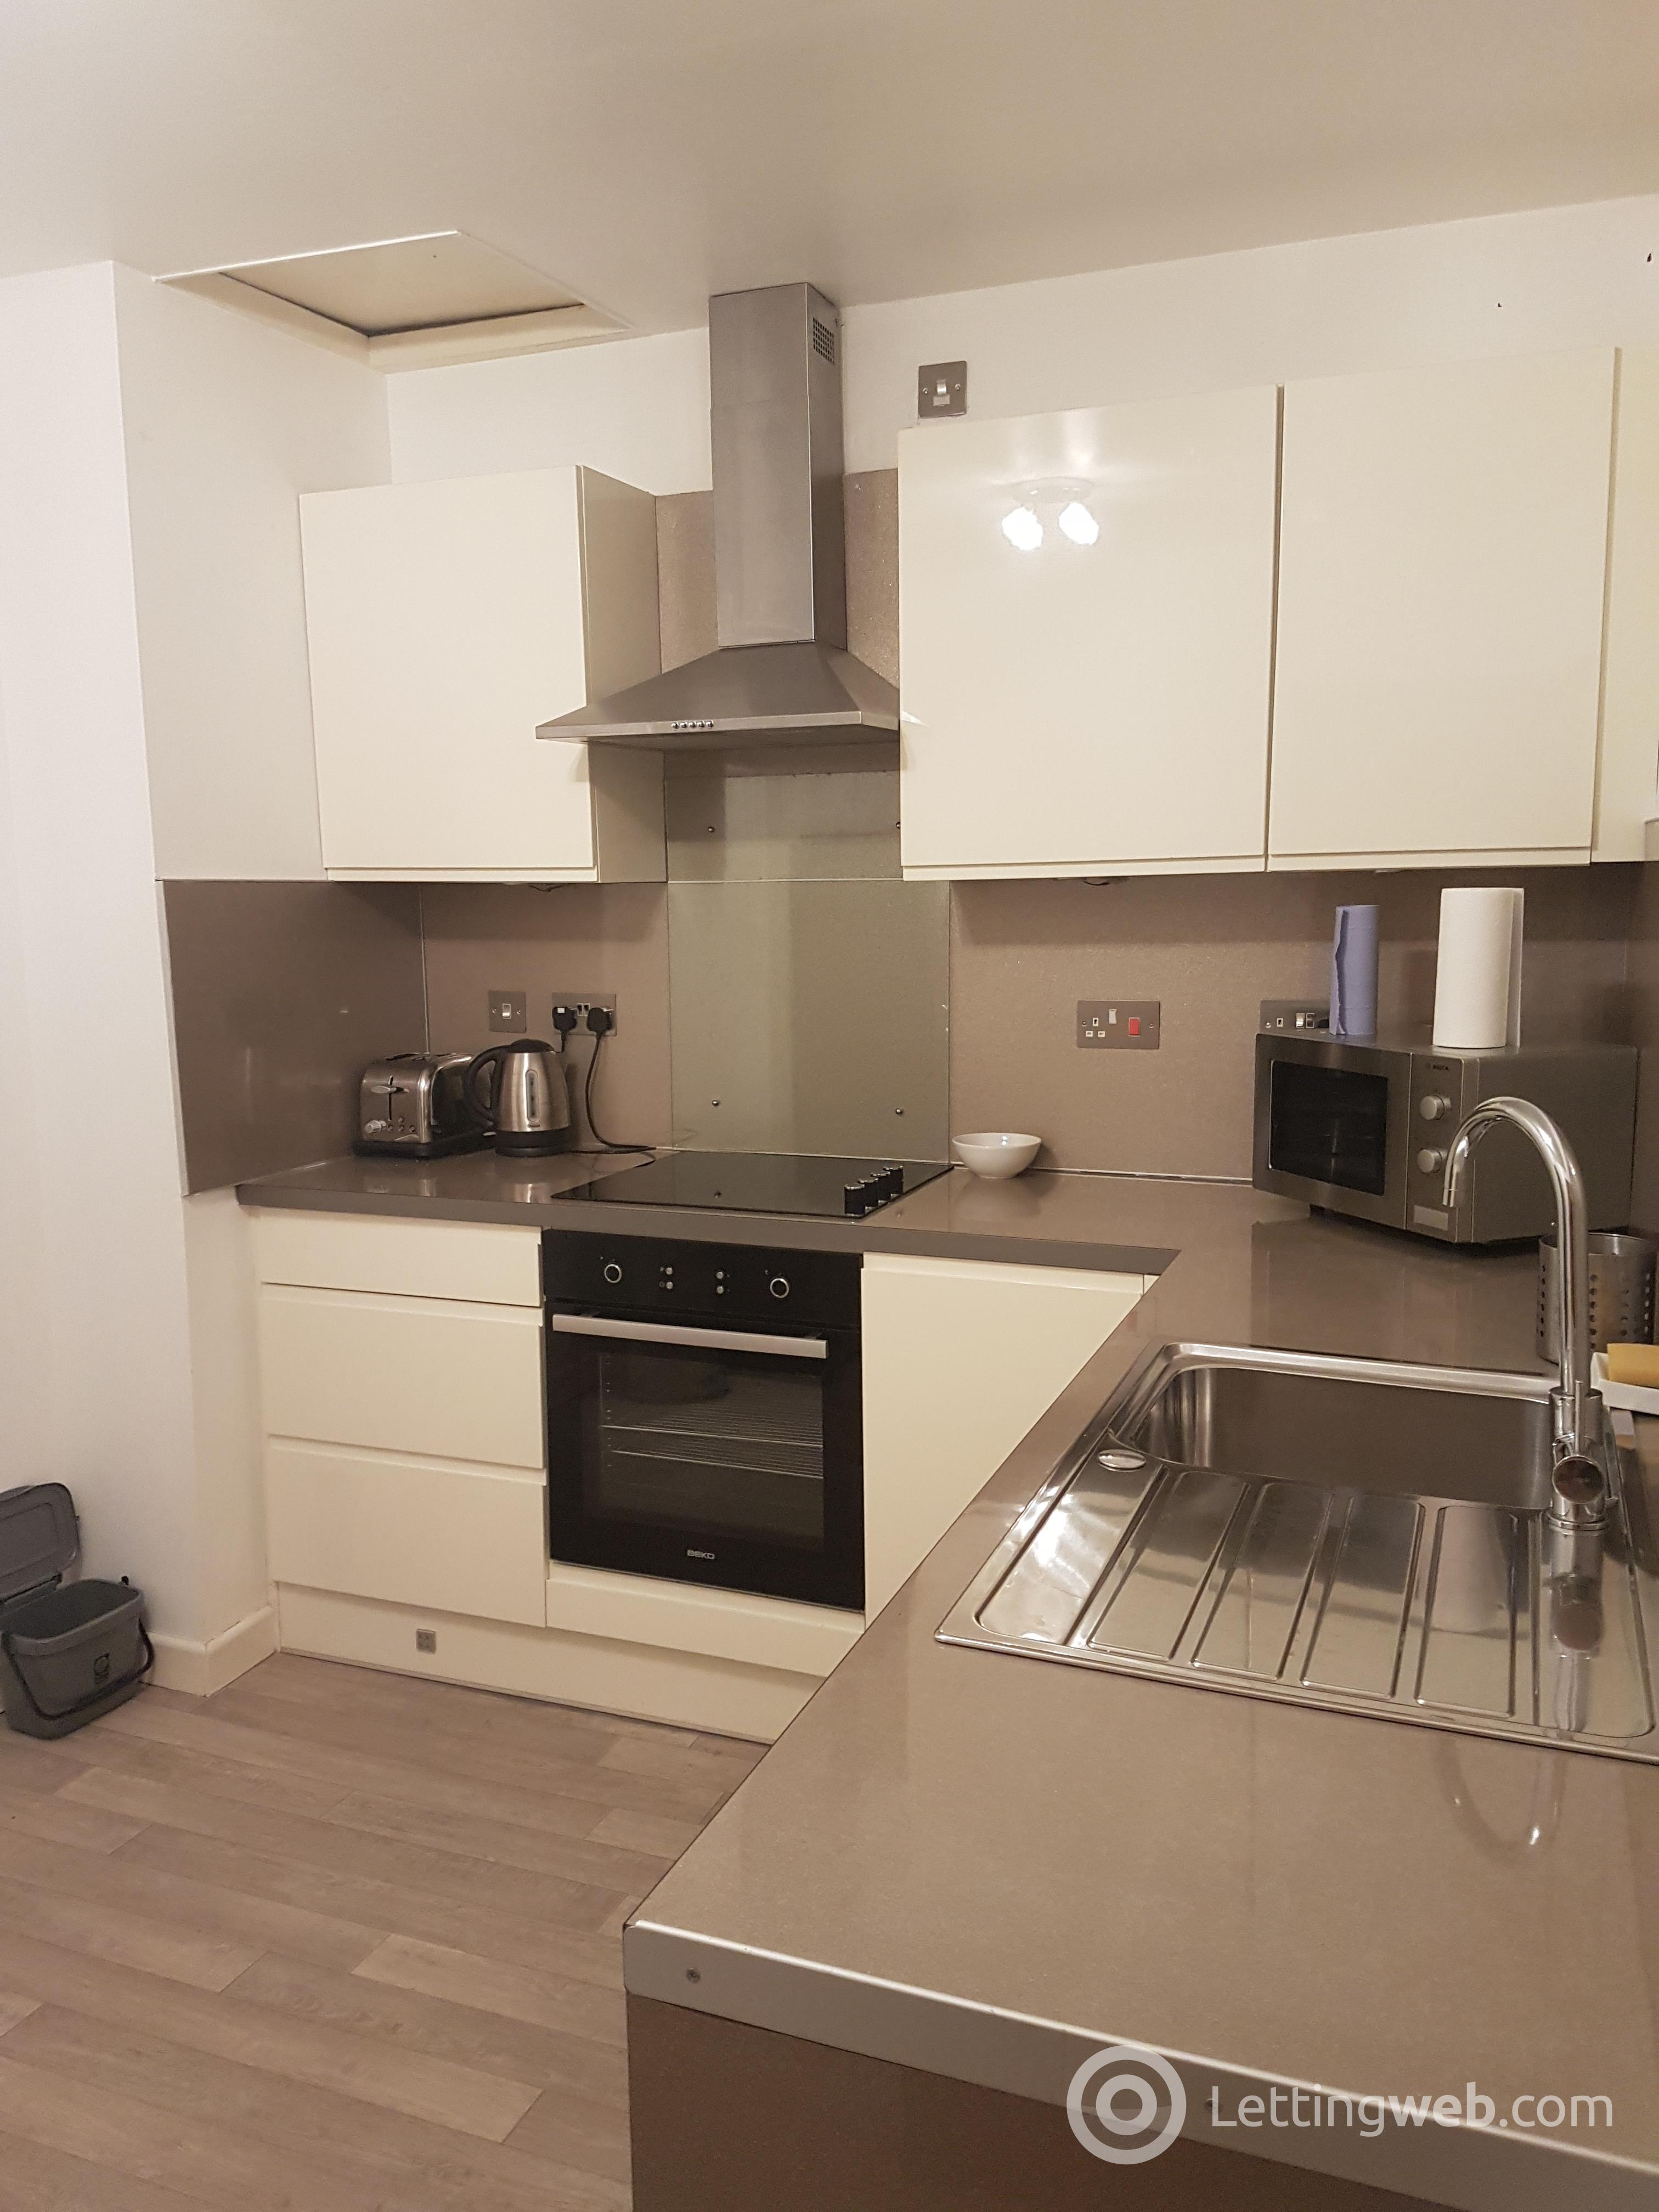 Property to rent in Sauchiehall Street